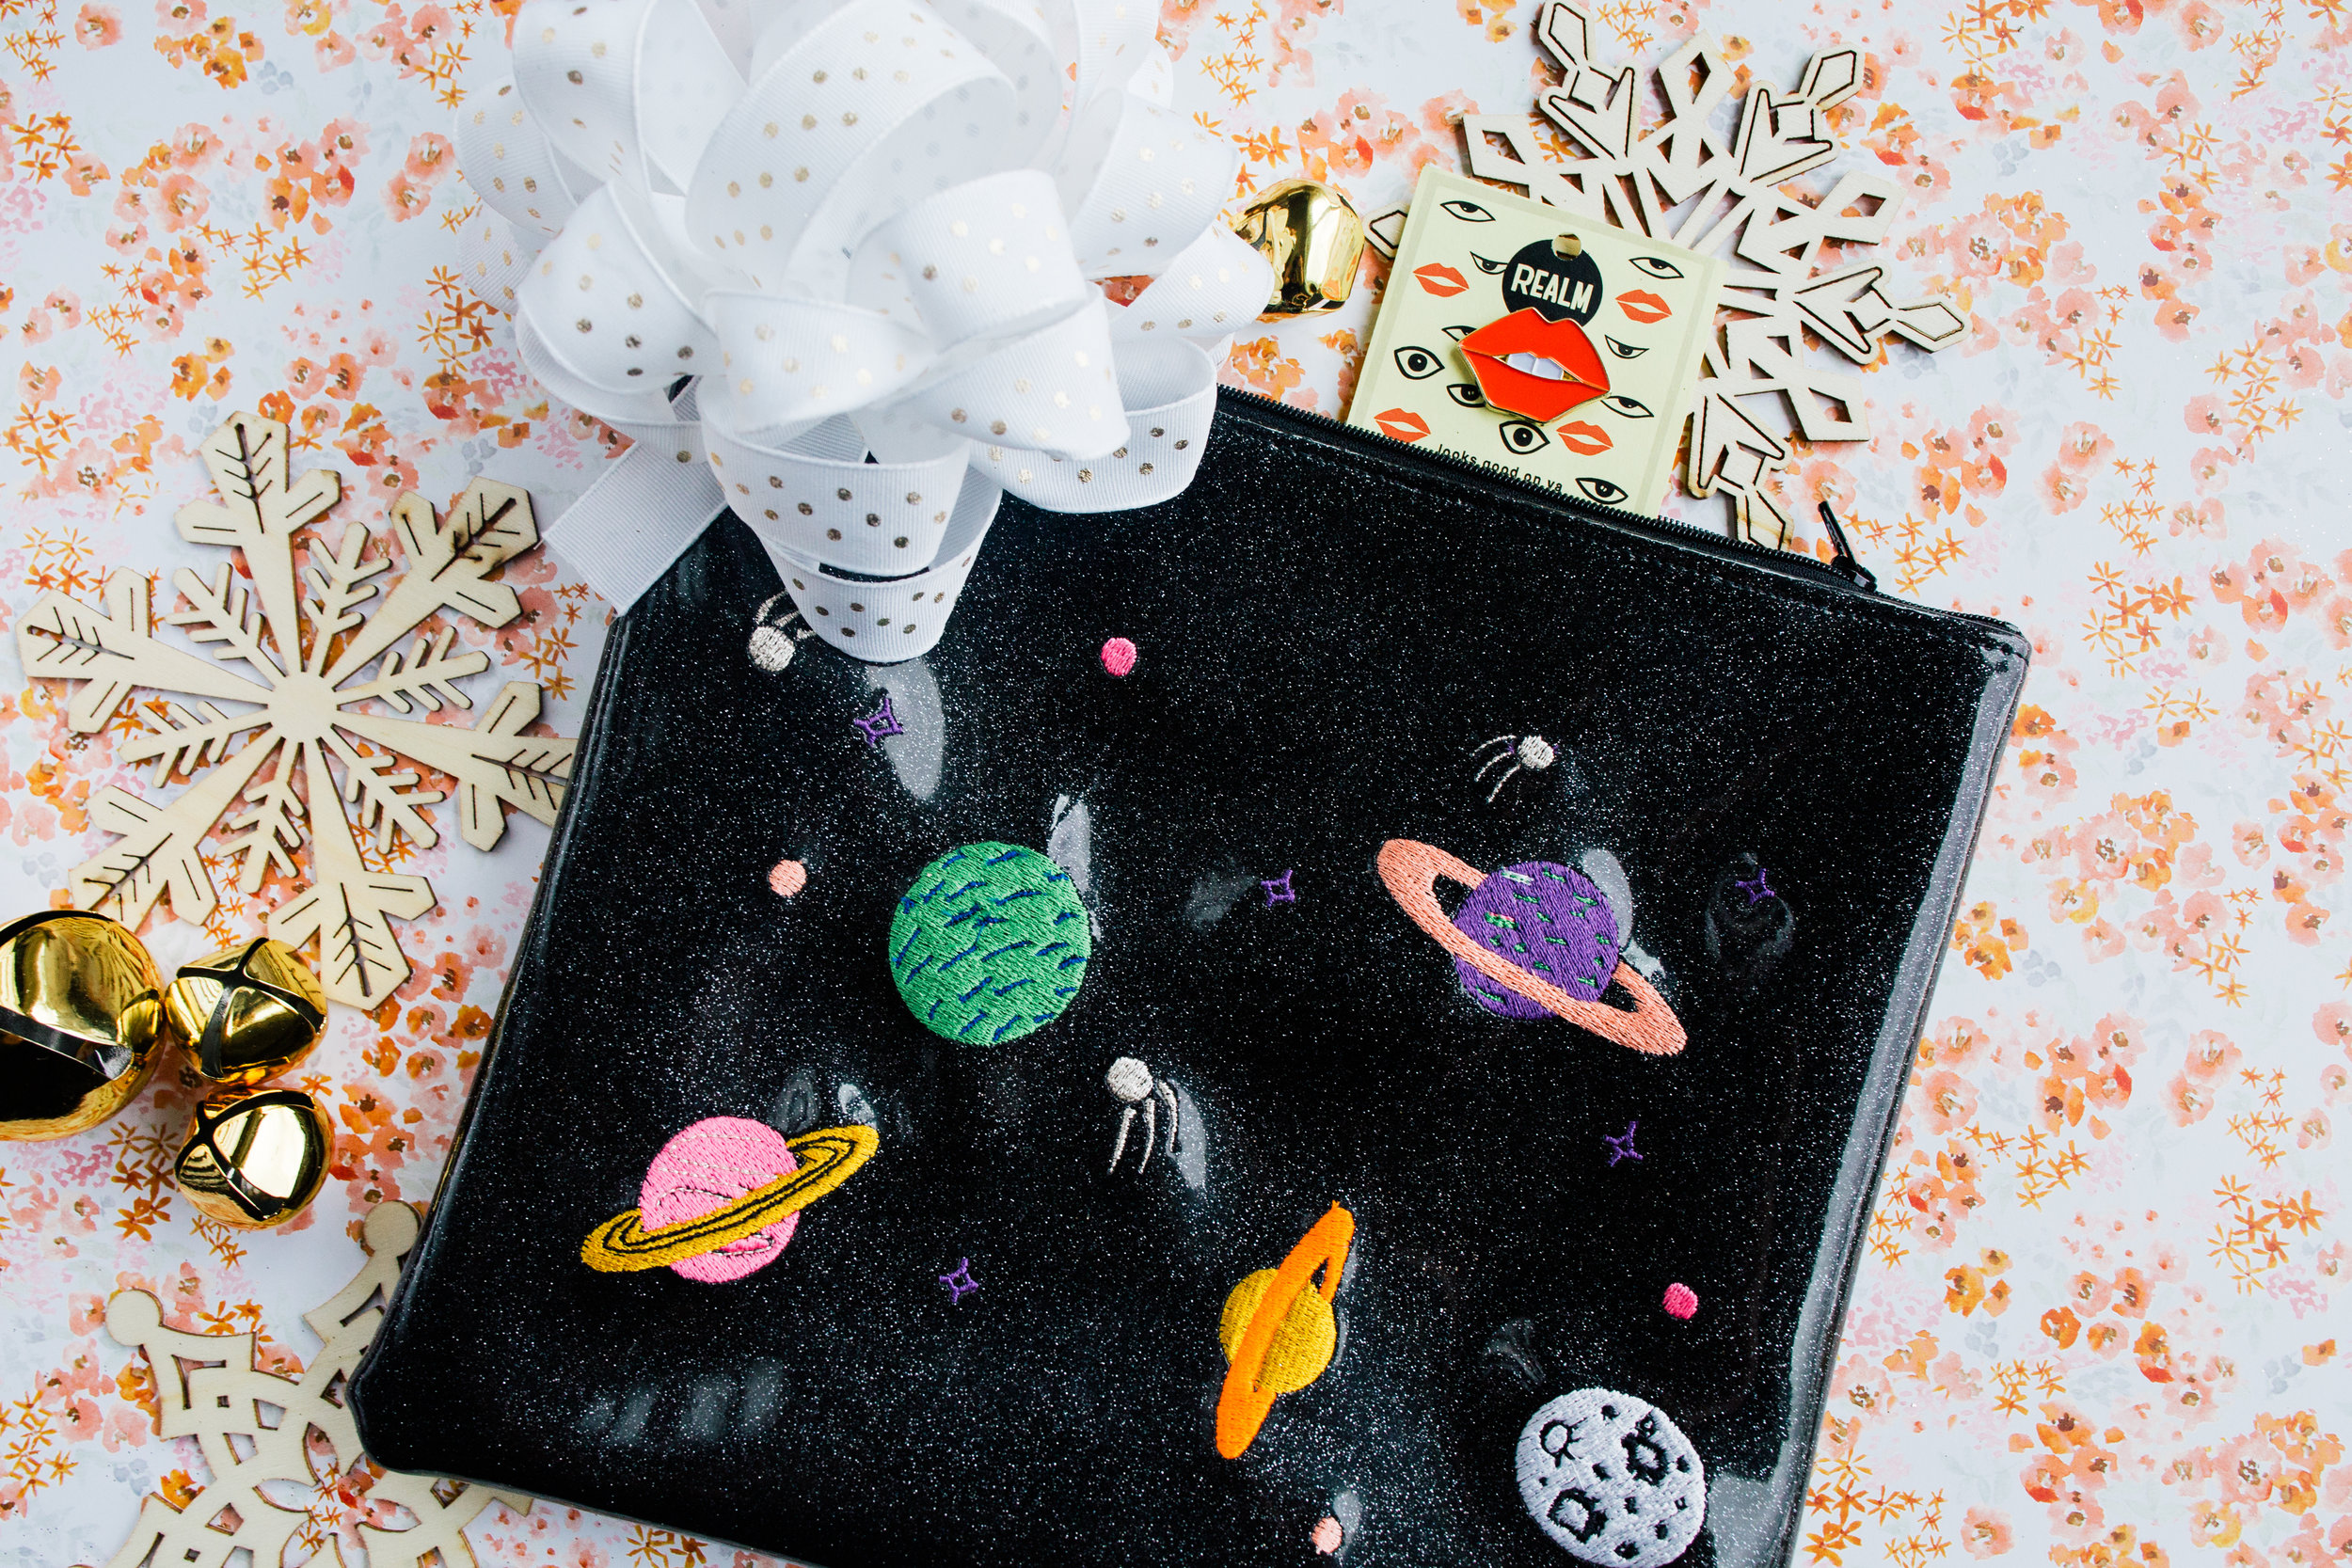 Space Case in Black by Realm!